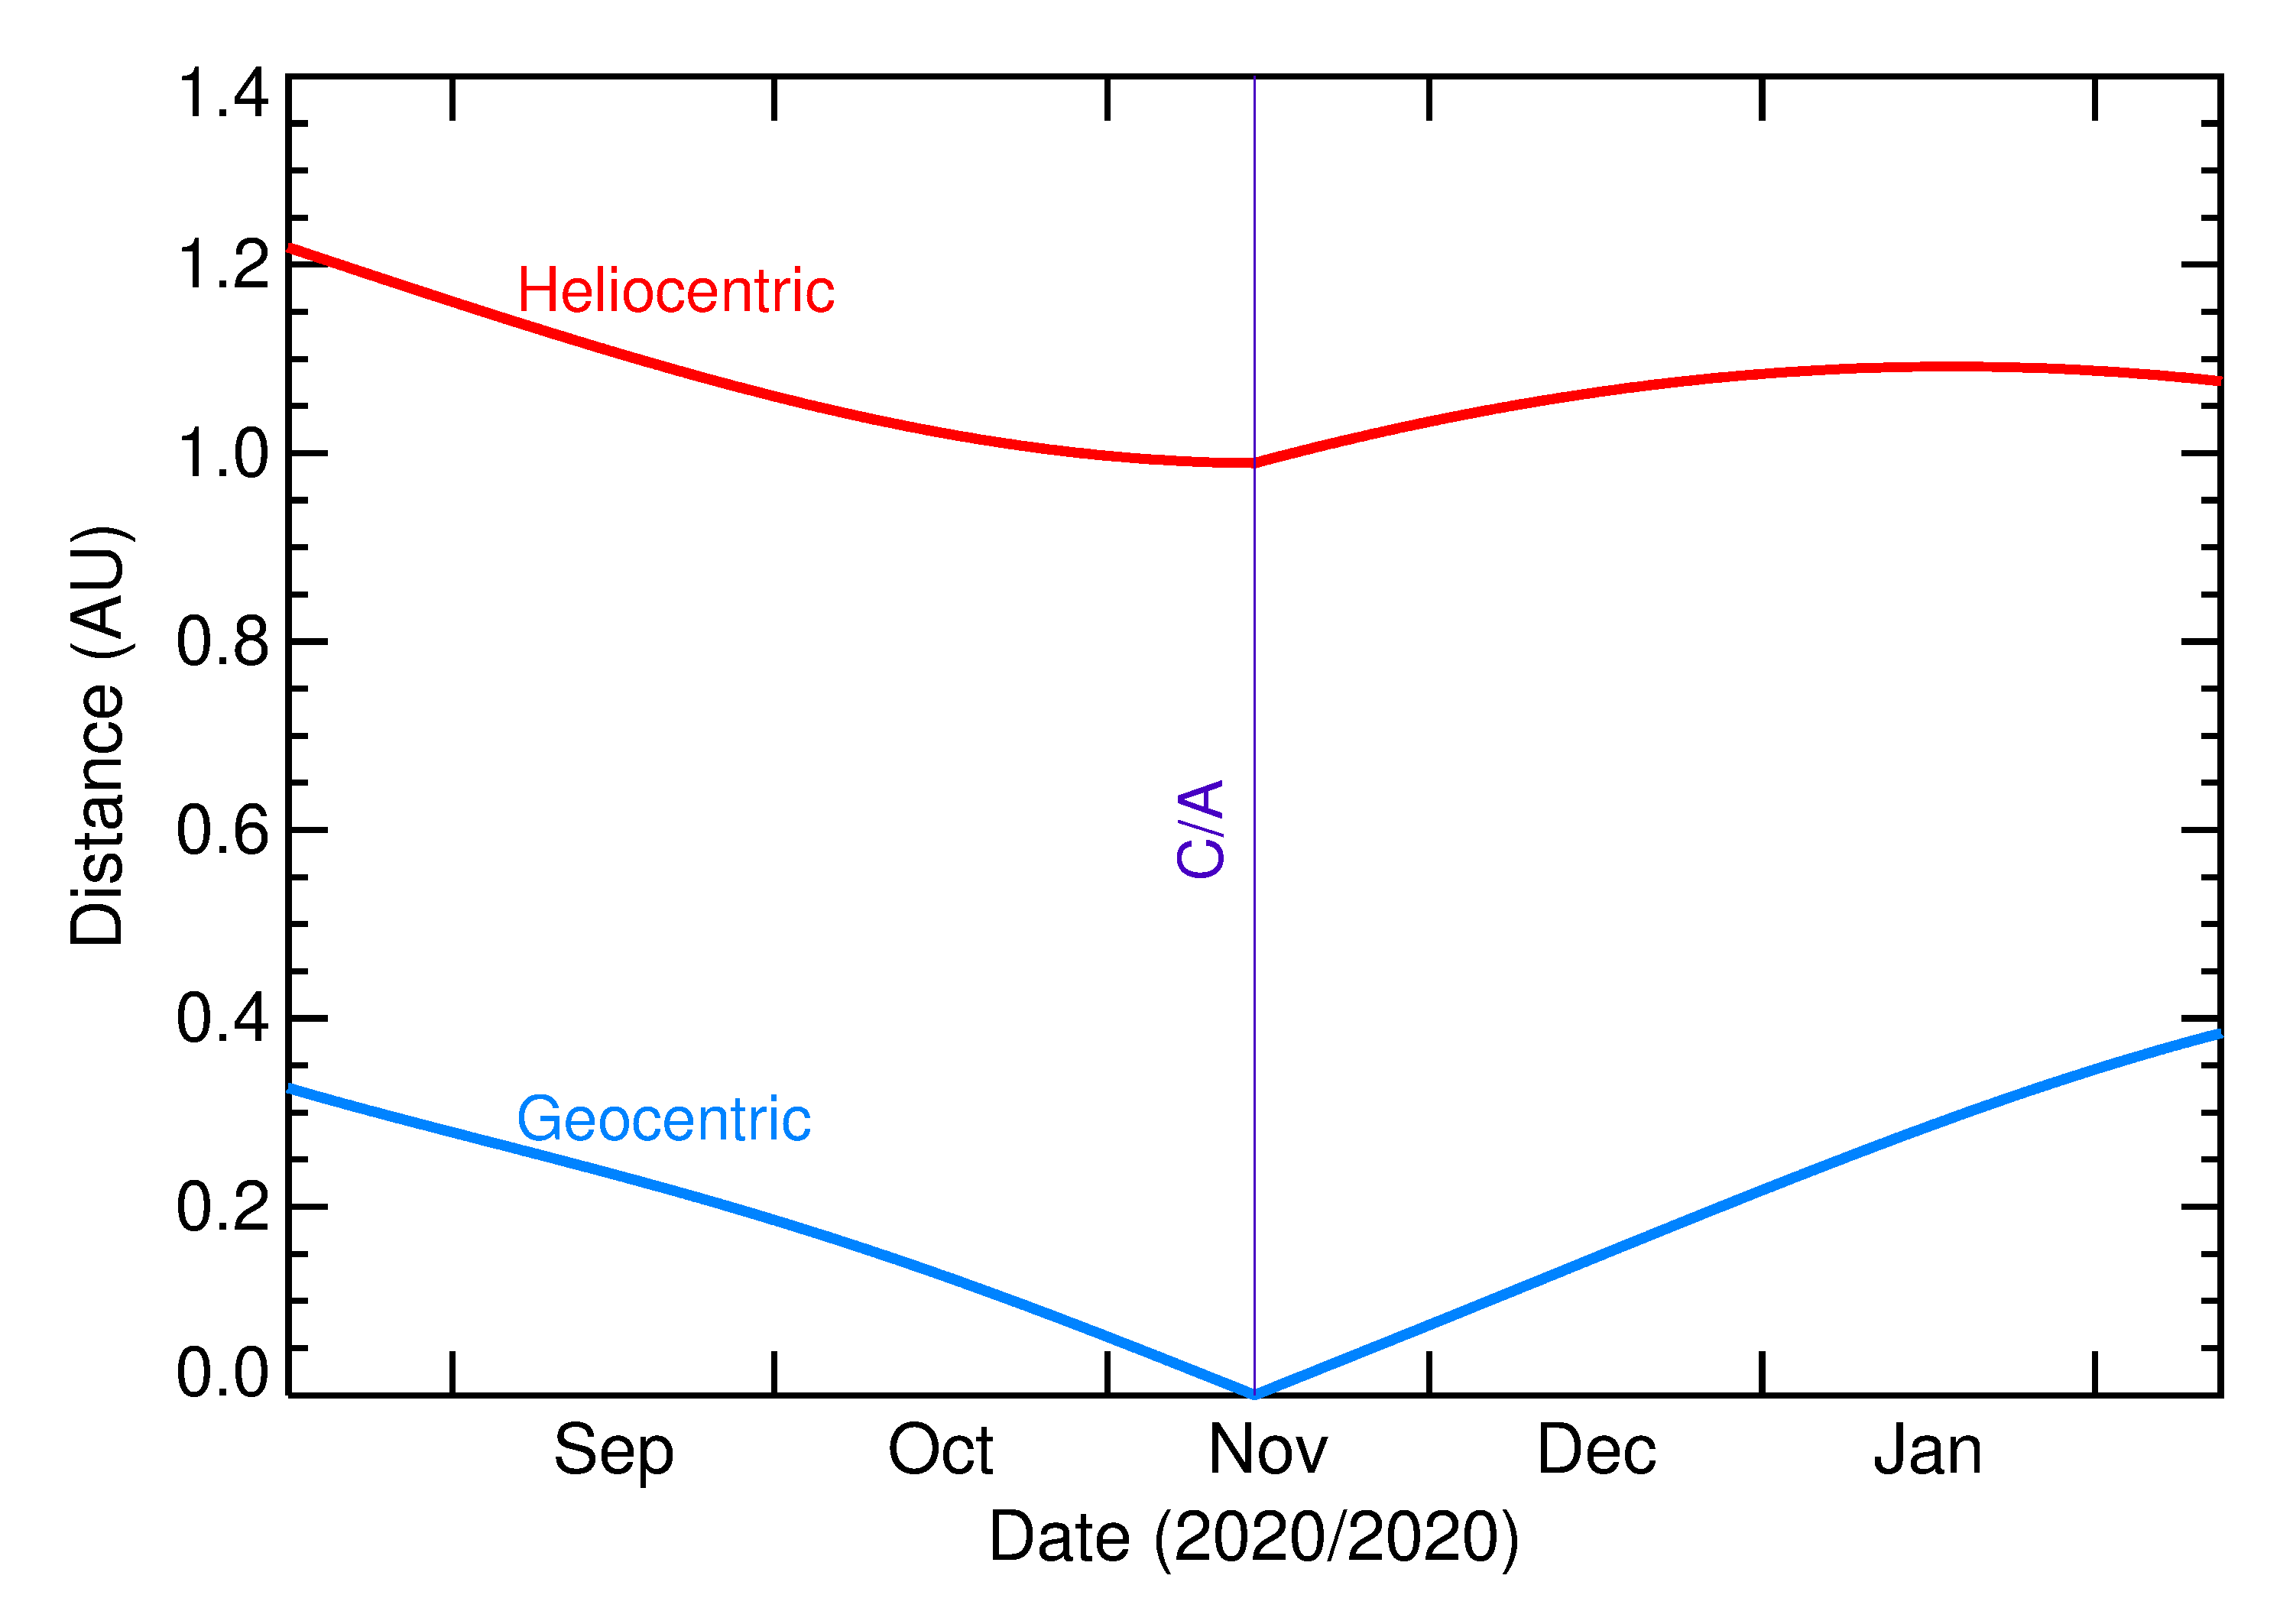 Heliocentric and Geocentric Distances of 2020 VT4 in the months around closest approach